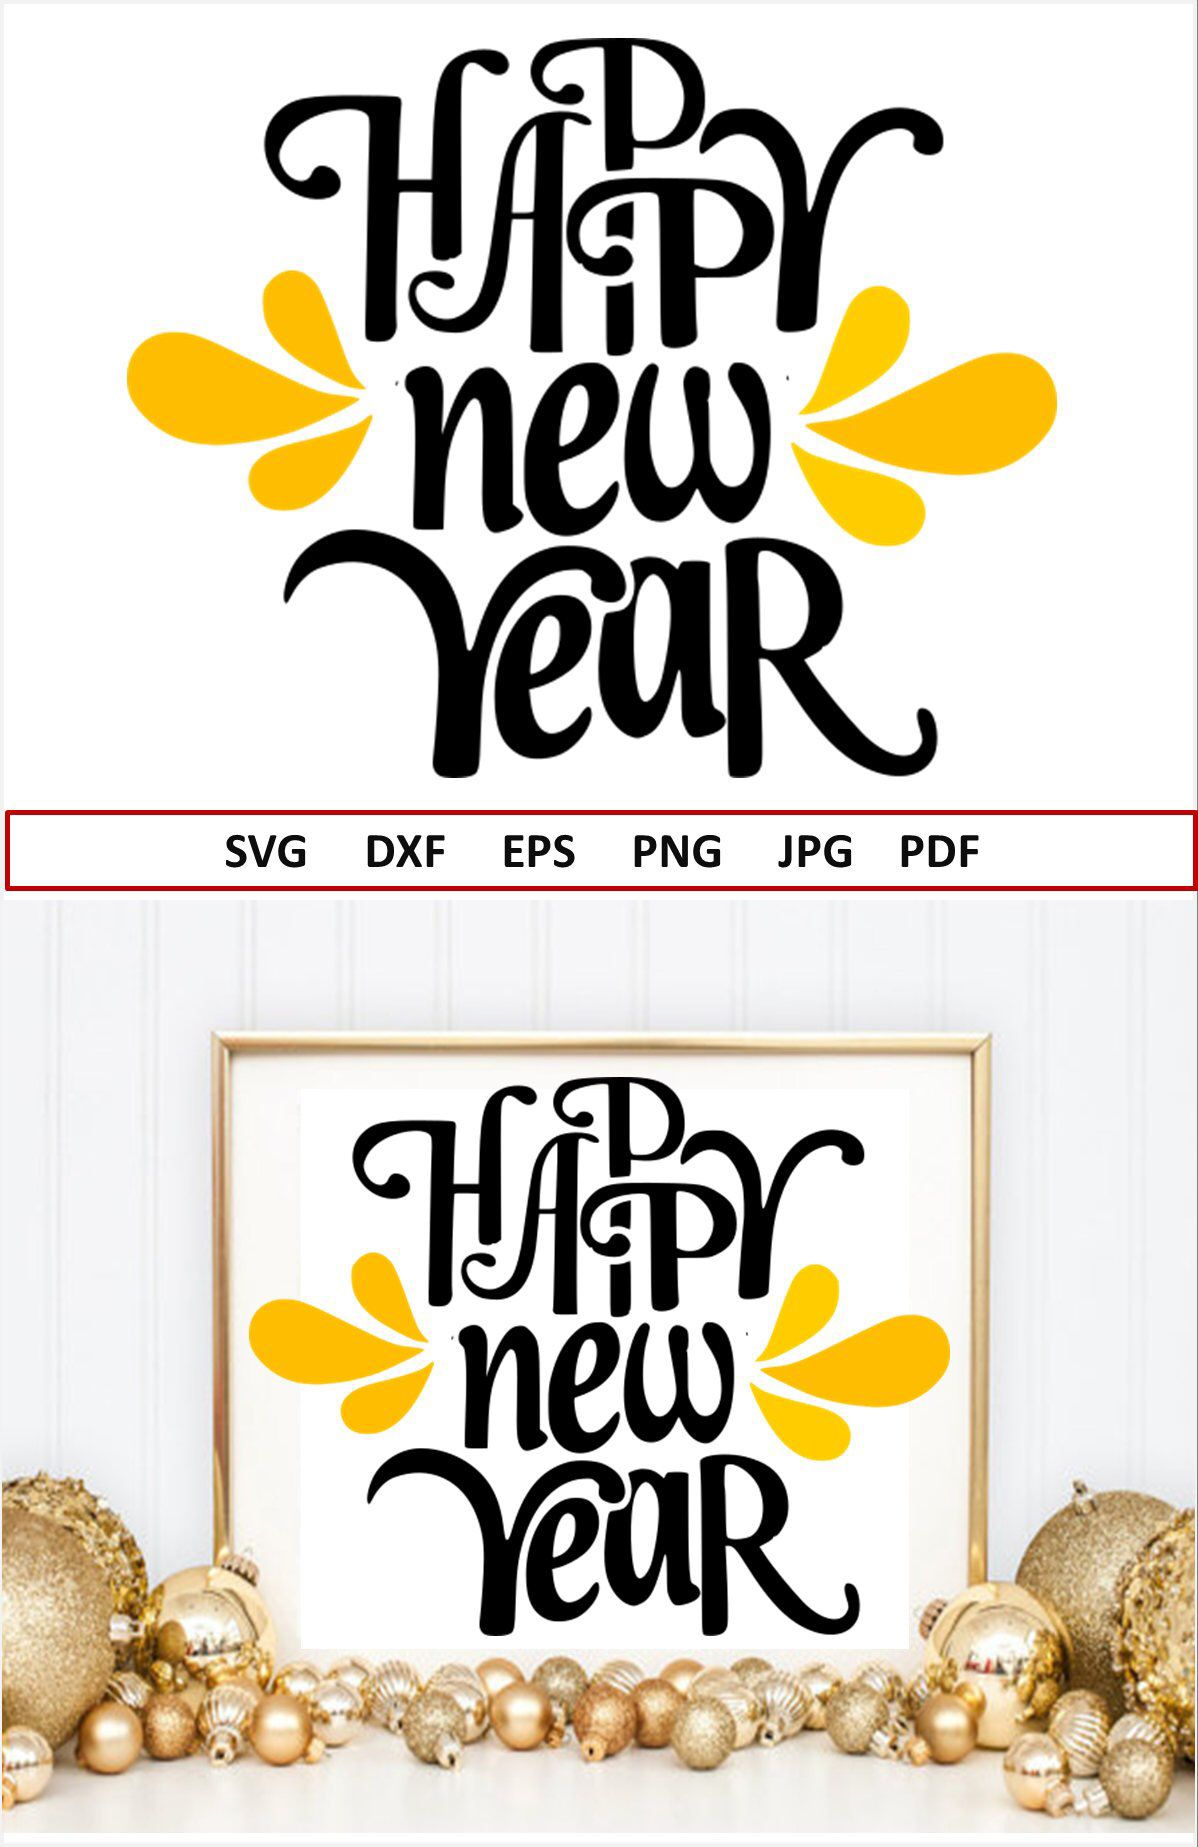 Happy New Year Svg 2019 Svg Files For Silhouette New Years Svg Etsy New Years Eve Decorations Christmas Svg Files Diy Arts And Crafts